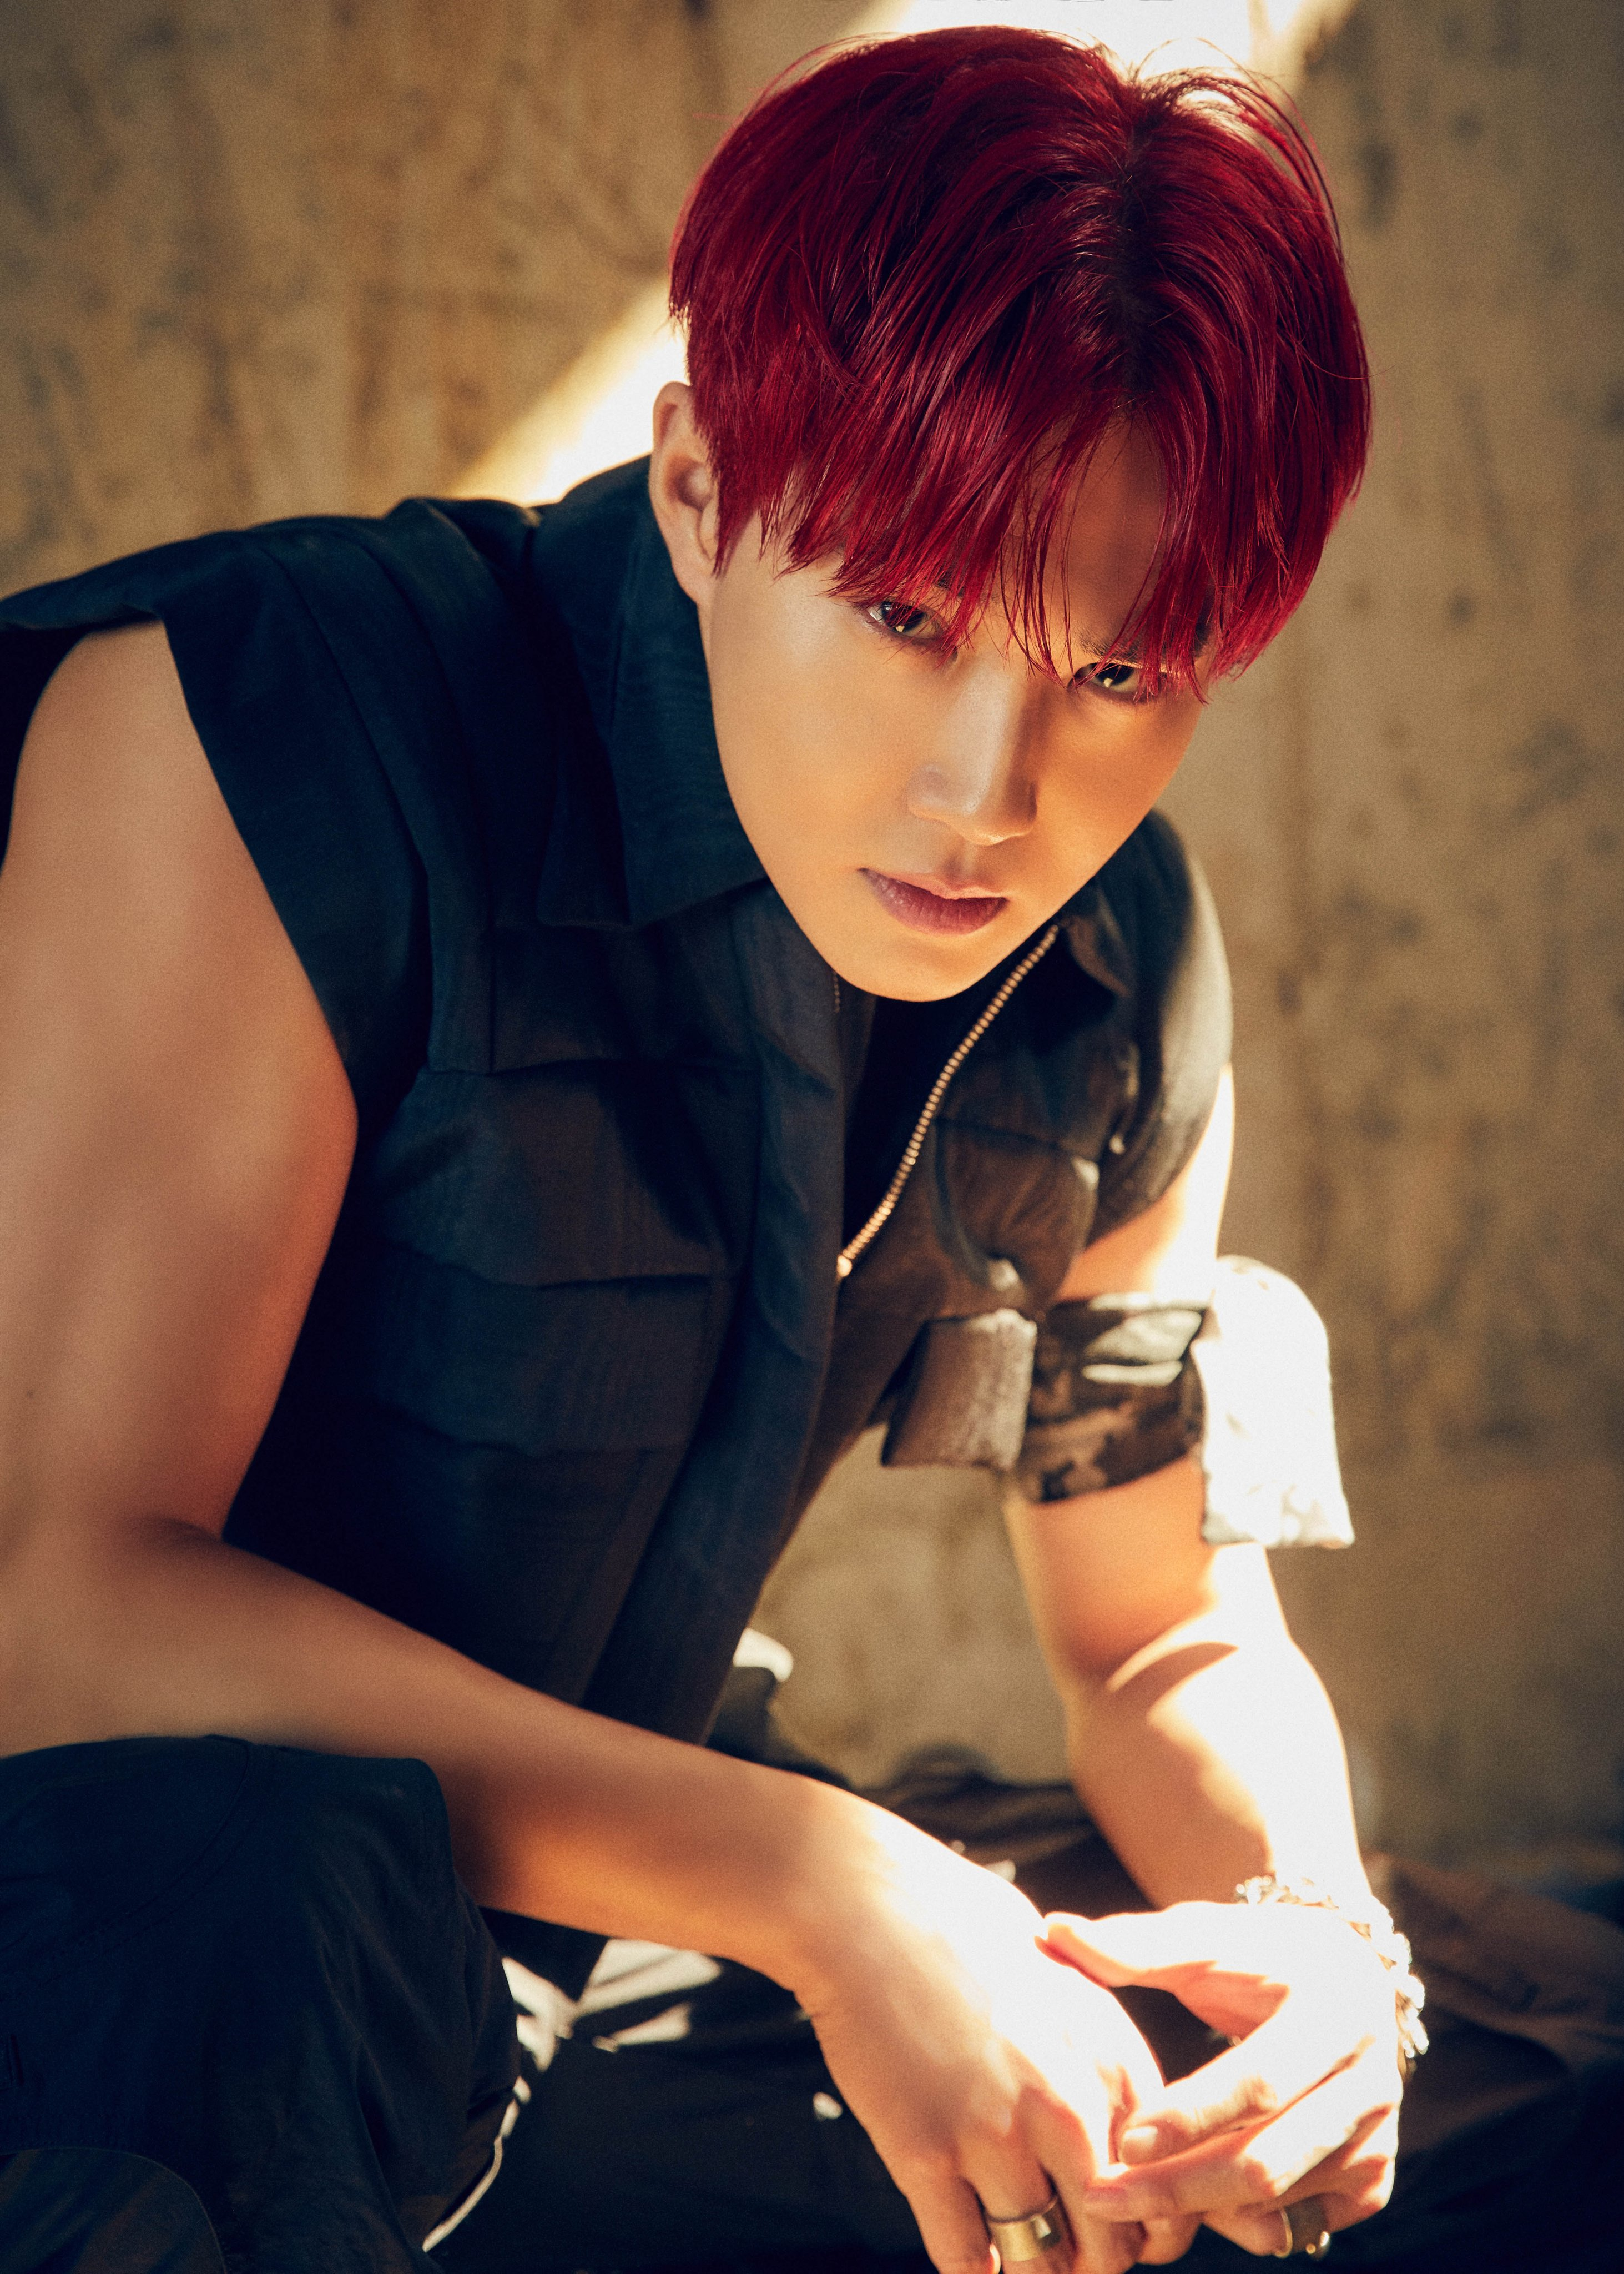 Watch Exo S Suho Rocks Good And Evil Looks With Fiery Red Hair In Obsession Teasers Soompi